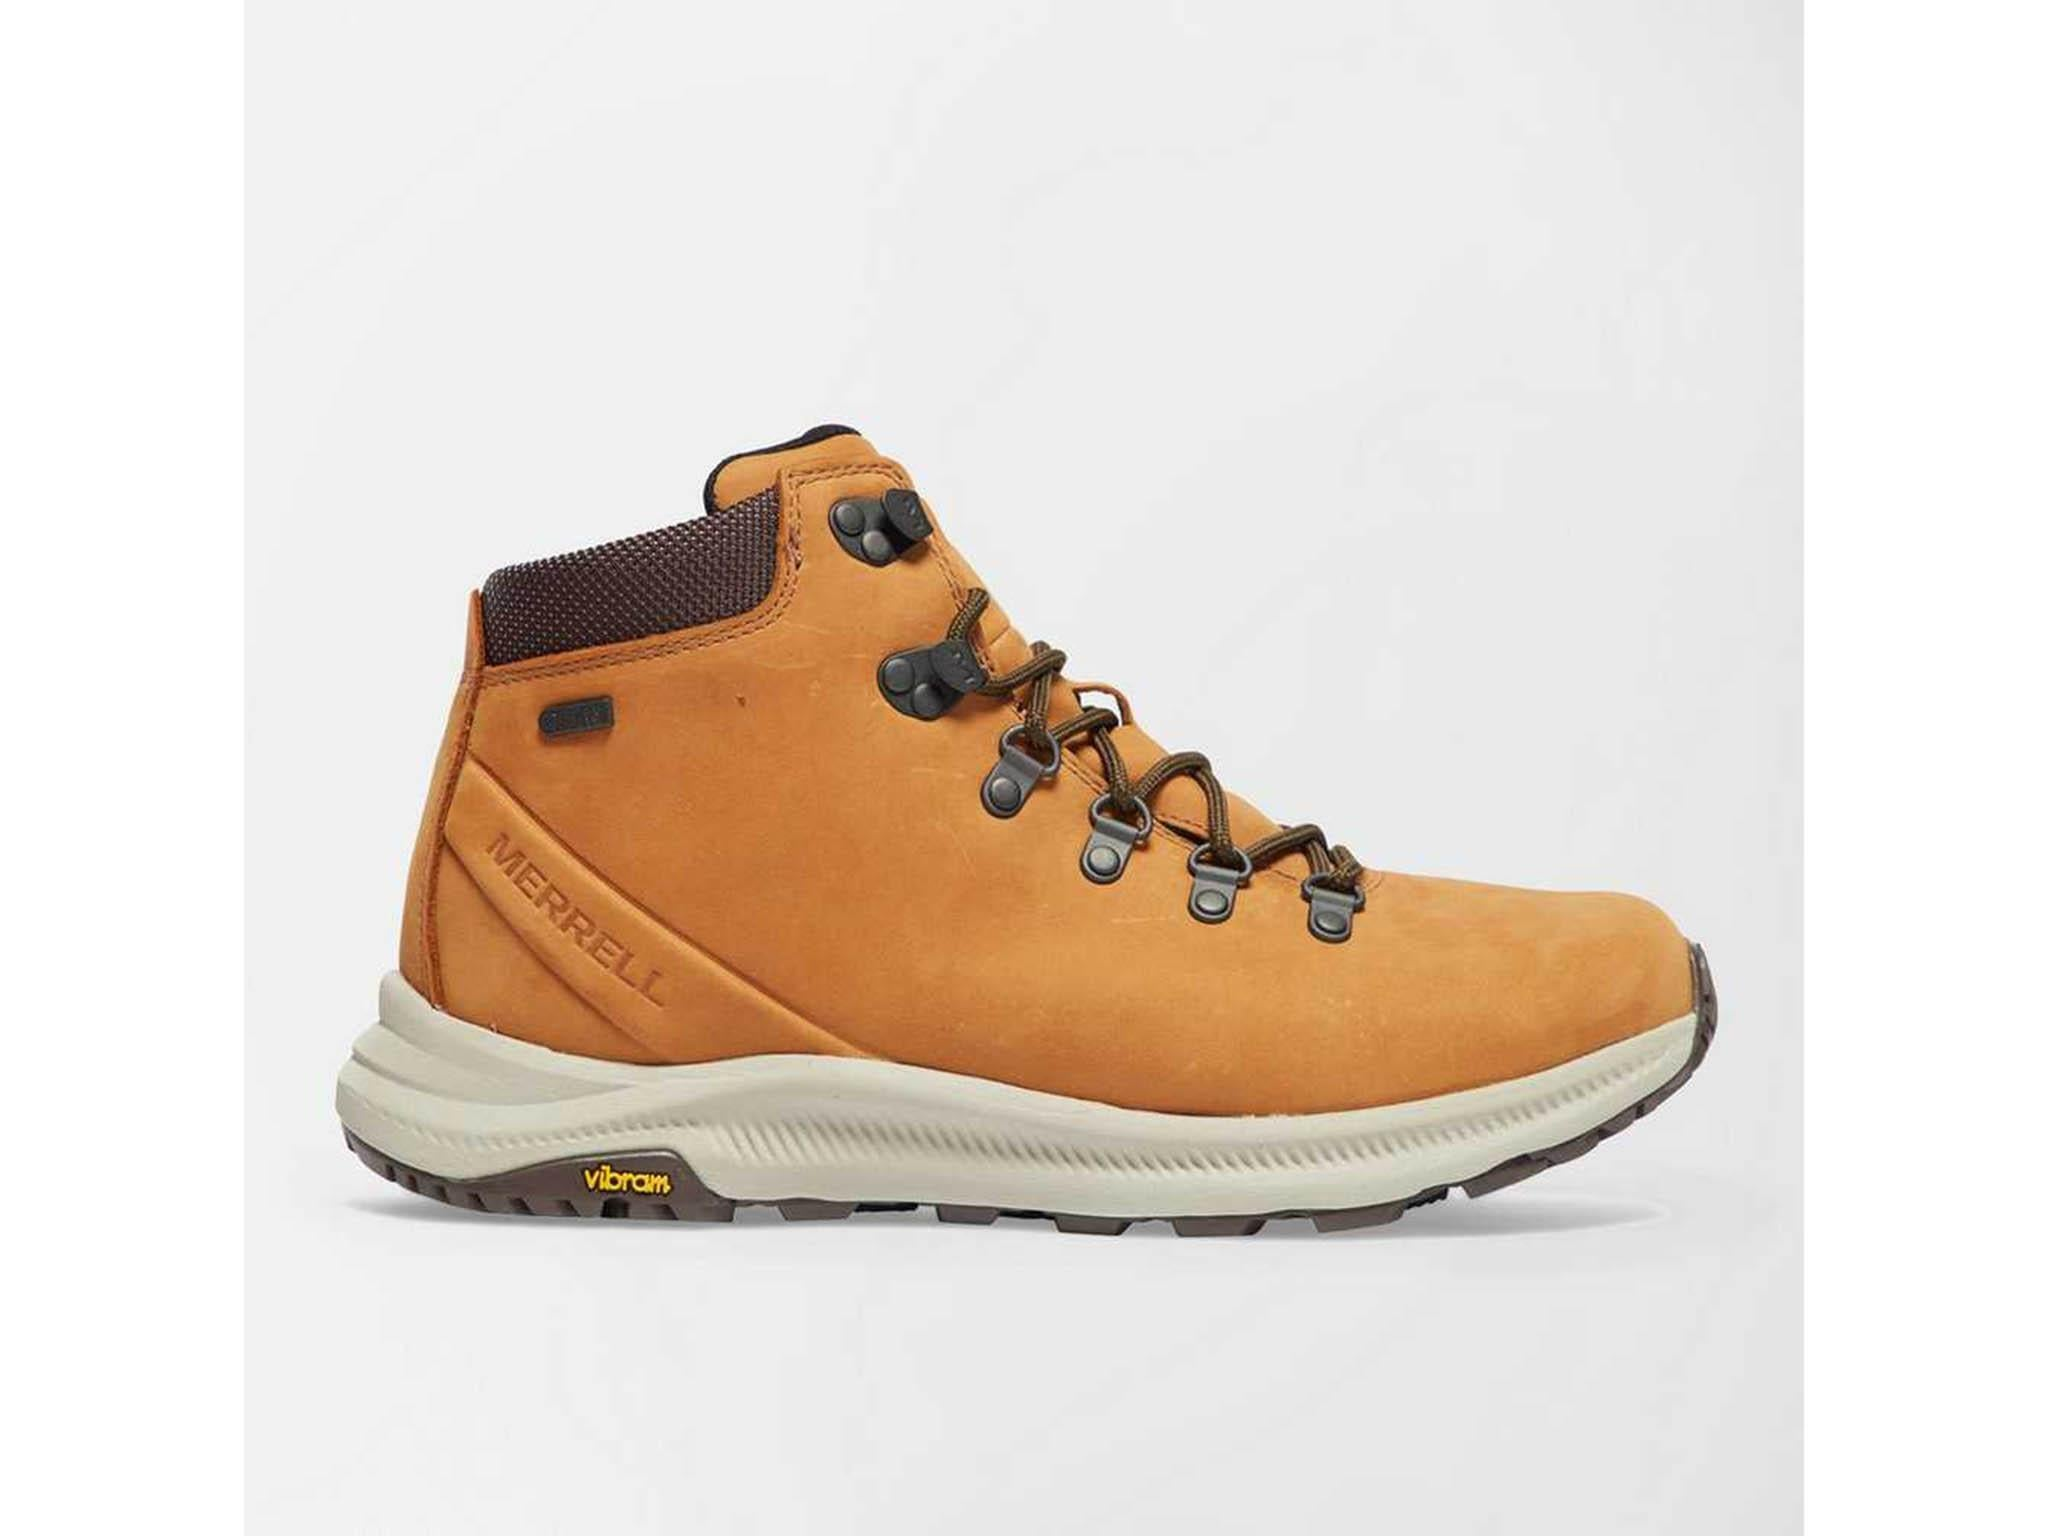 c9017df323567 Best men's hiking boots and shoes